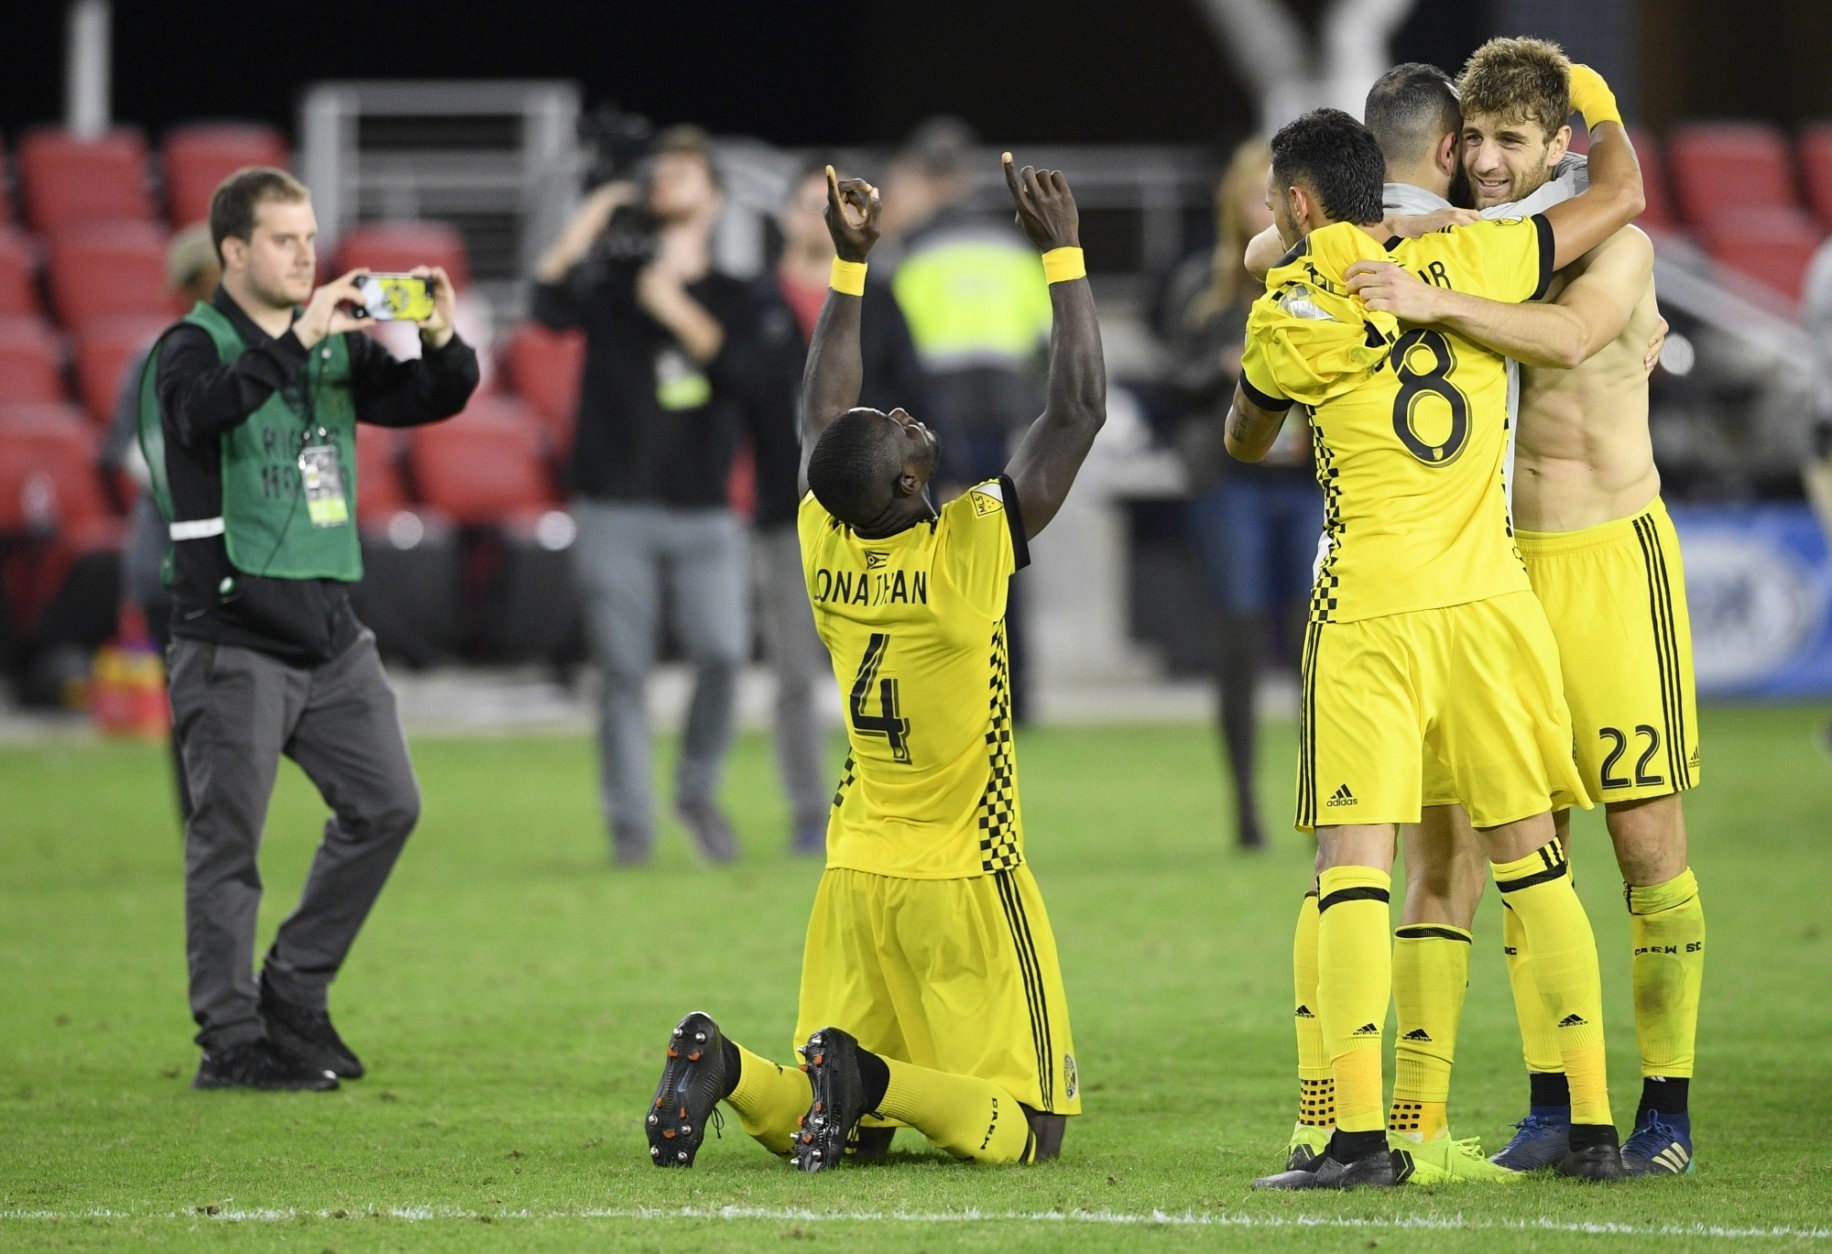 Columbus Crew SC defender Jonathan Mensah (4), midfielder Artur (8) and defender Gaston Sauro (22) celebrate after winning an MLS playoff soccer match in penalty kicks against D.C. United, Thursday, Nov. 1, 2018, in Washington. The Crew SC won 2-2 (3-2) in penalty kicks. (AP Photo/Nick Wass)